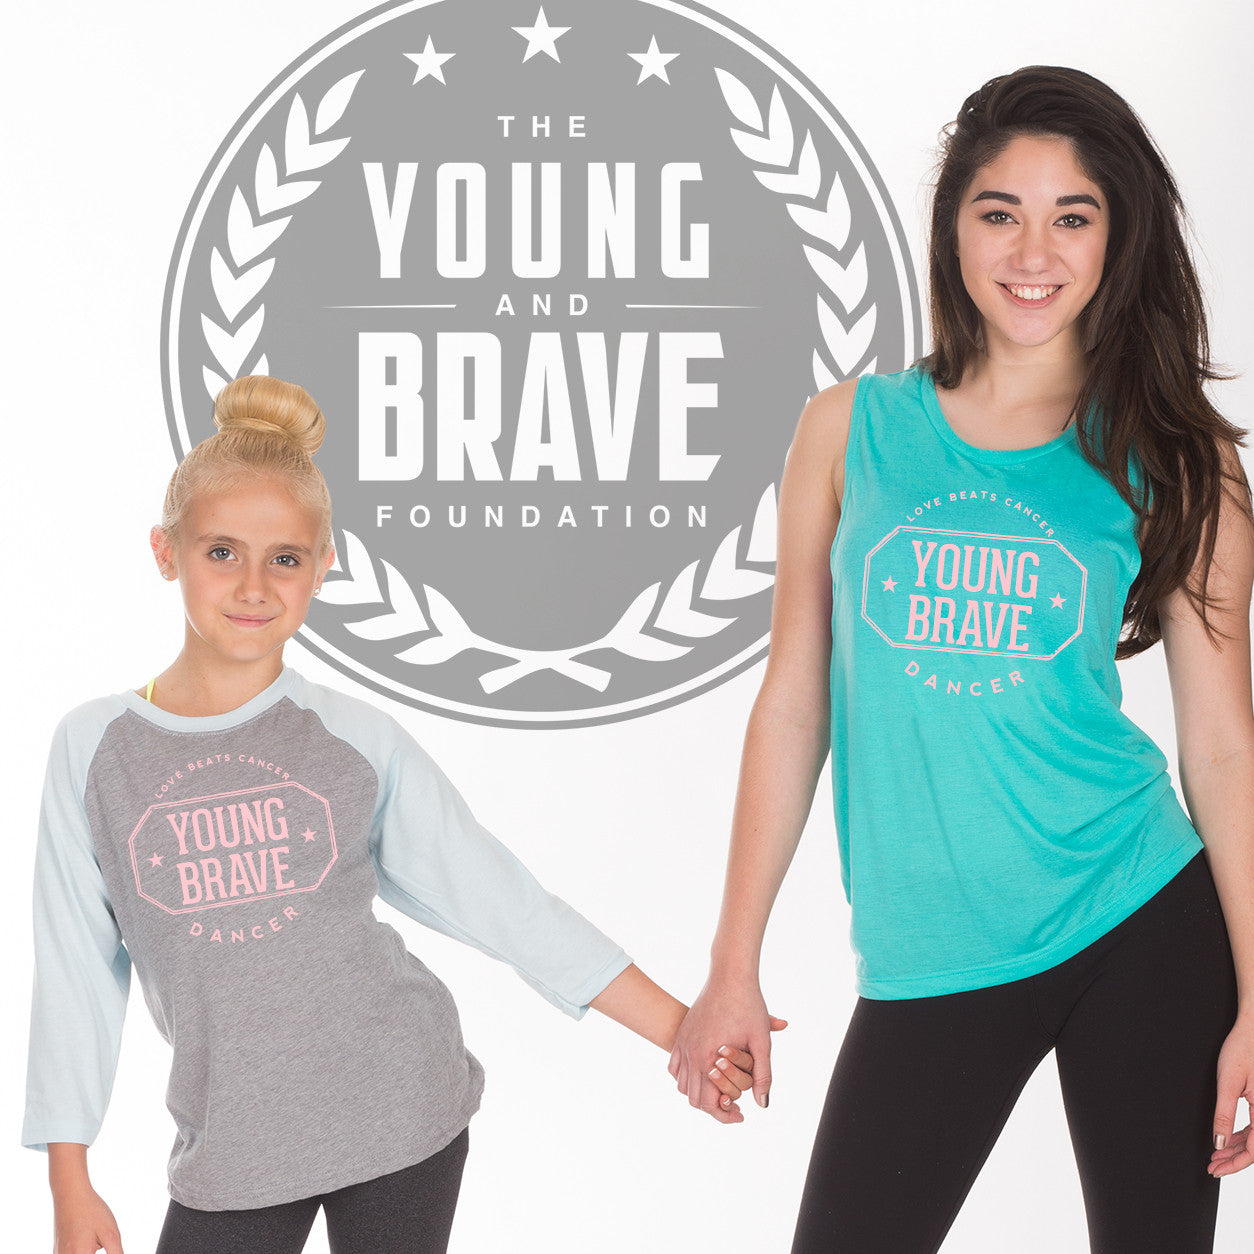 Young Brave Dancer Tees to Benefit Youths with Cancer